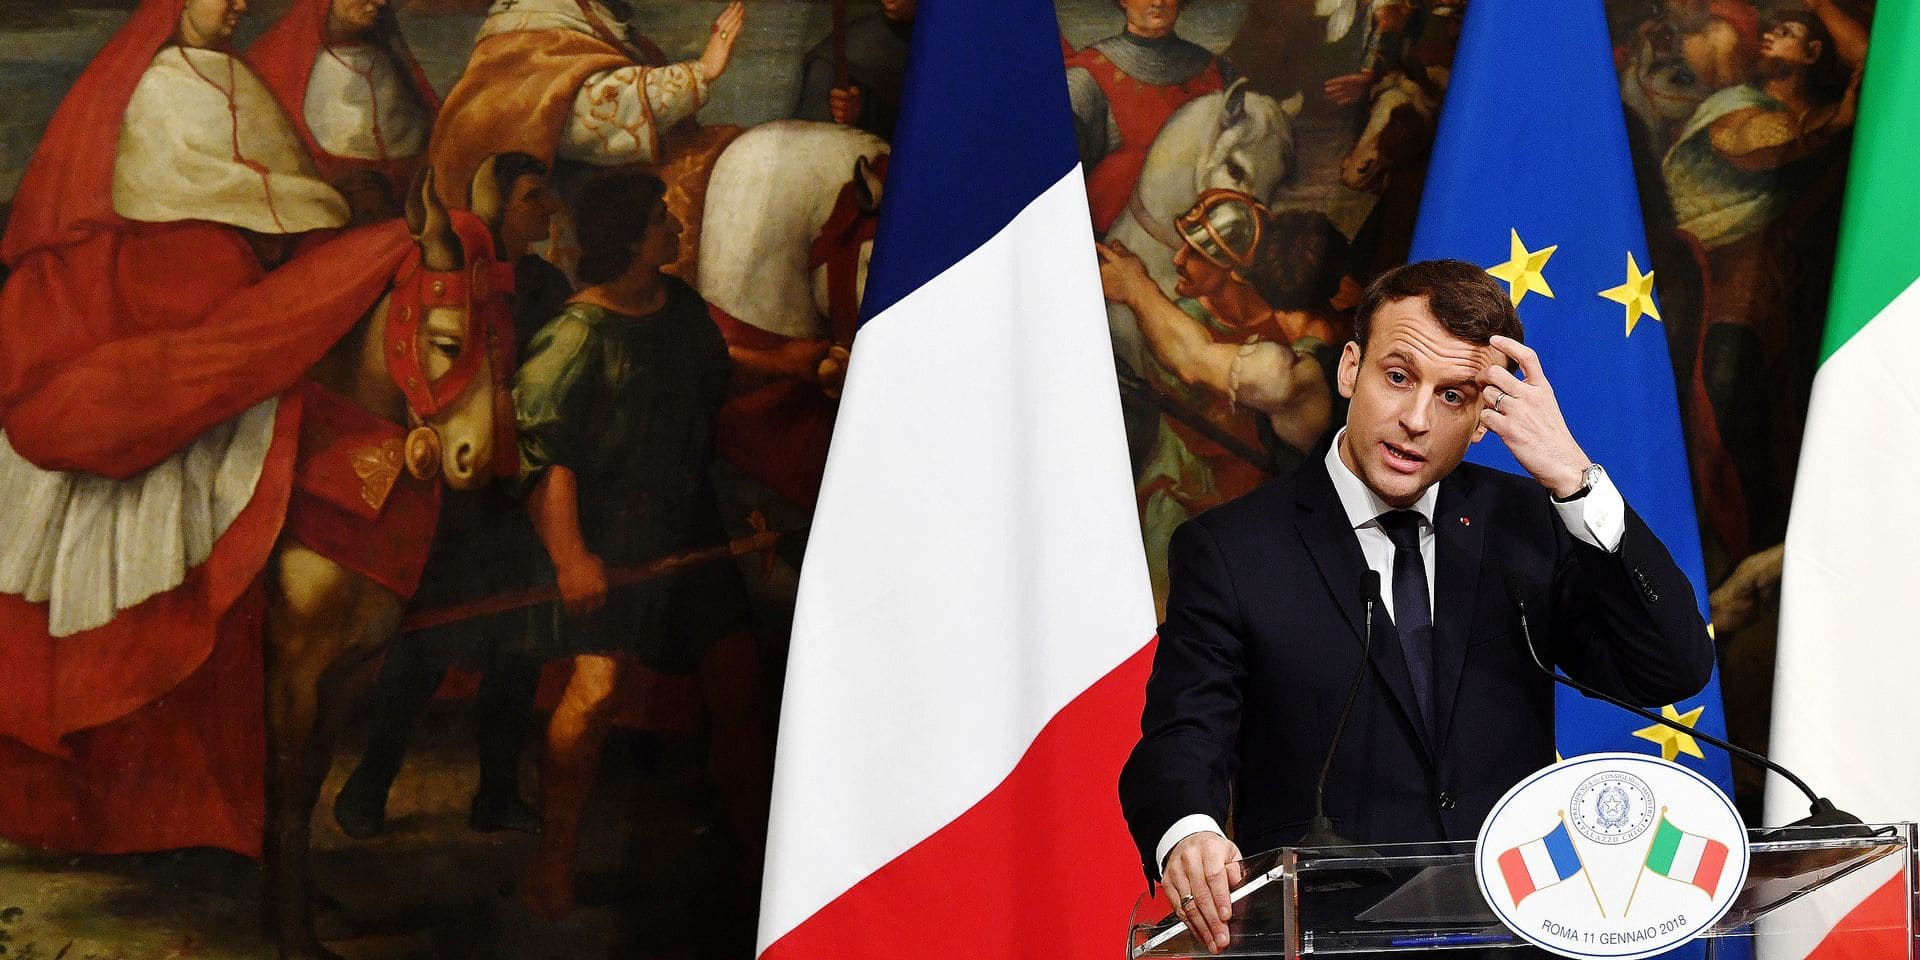 France's President Emmanuel Macron attends a press conference following his meeting with Italian Prime Minister Paolo Gentiloni on January 11, 2018 at the Palazzo Chigi in Rome, Italy. Photo : Eric Vandeville/ABACAPRESS.COM Reporters / Abaca